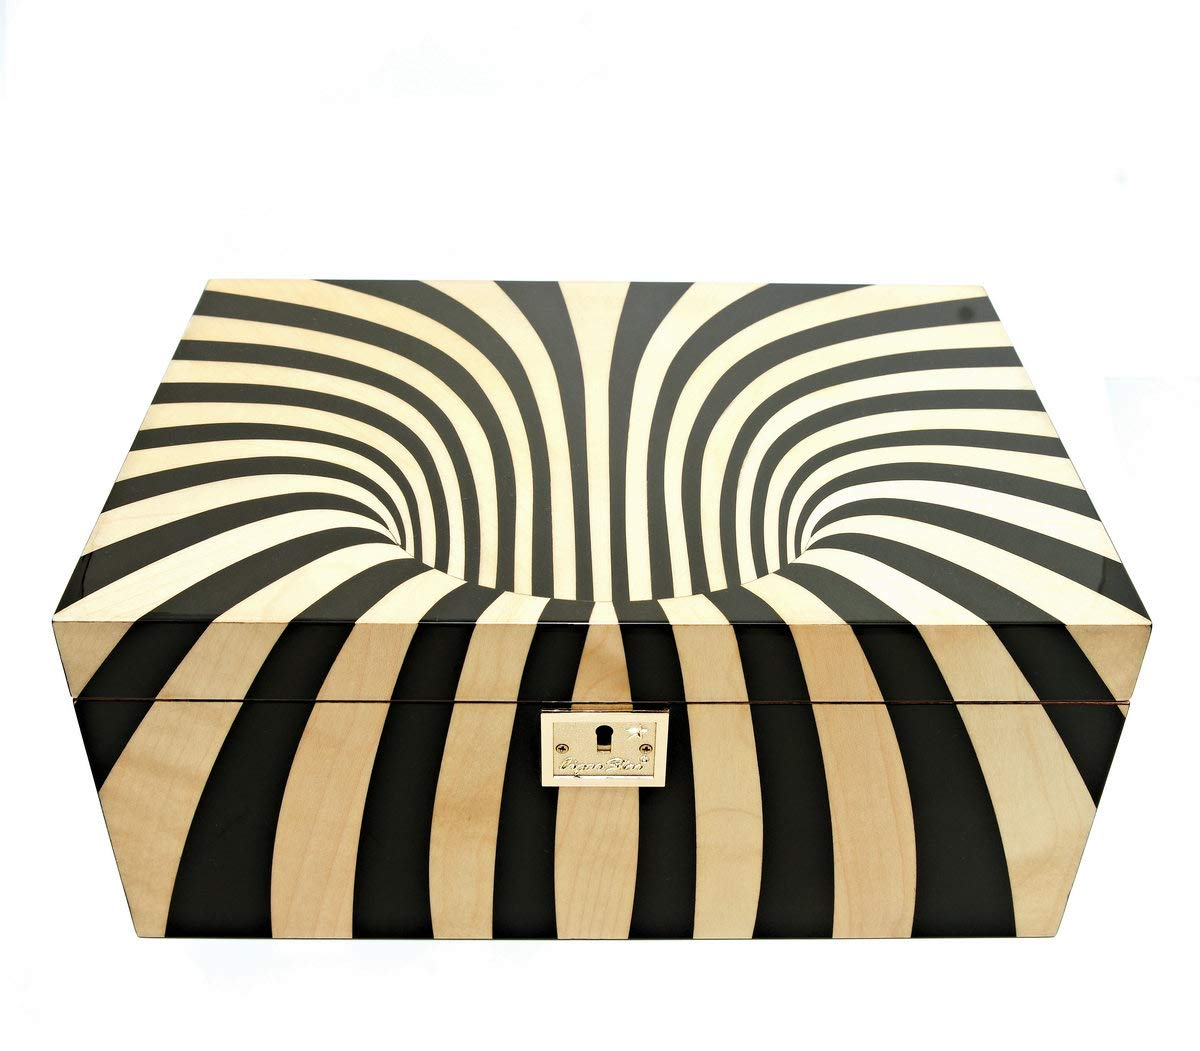 Cigar Star Boketto Humidor Limited Edition Optical Illusion Made from Wood! by Cigar Star (Image #2)